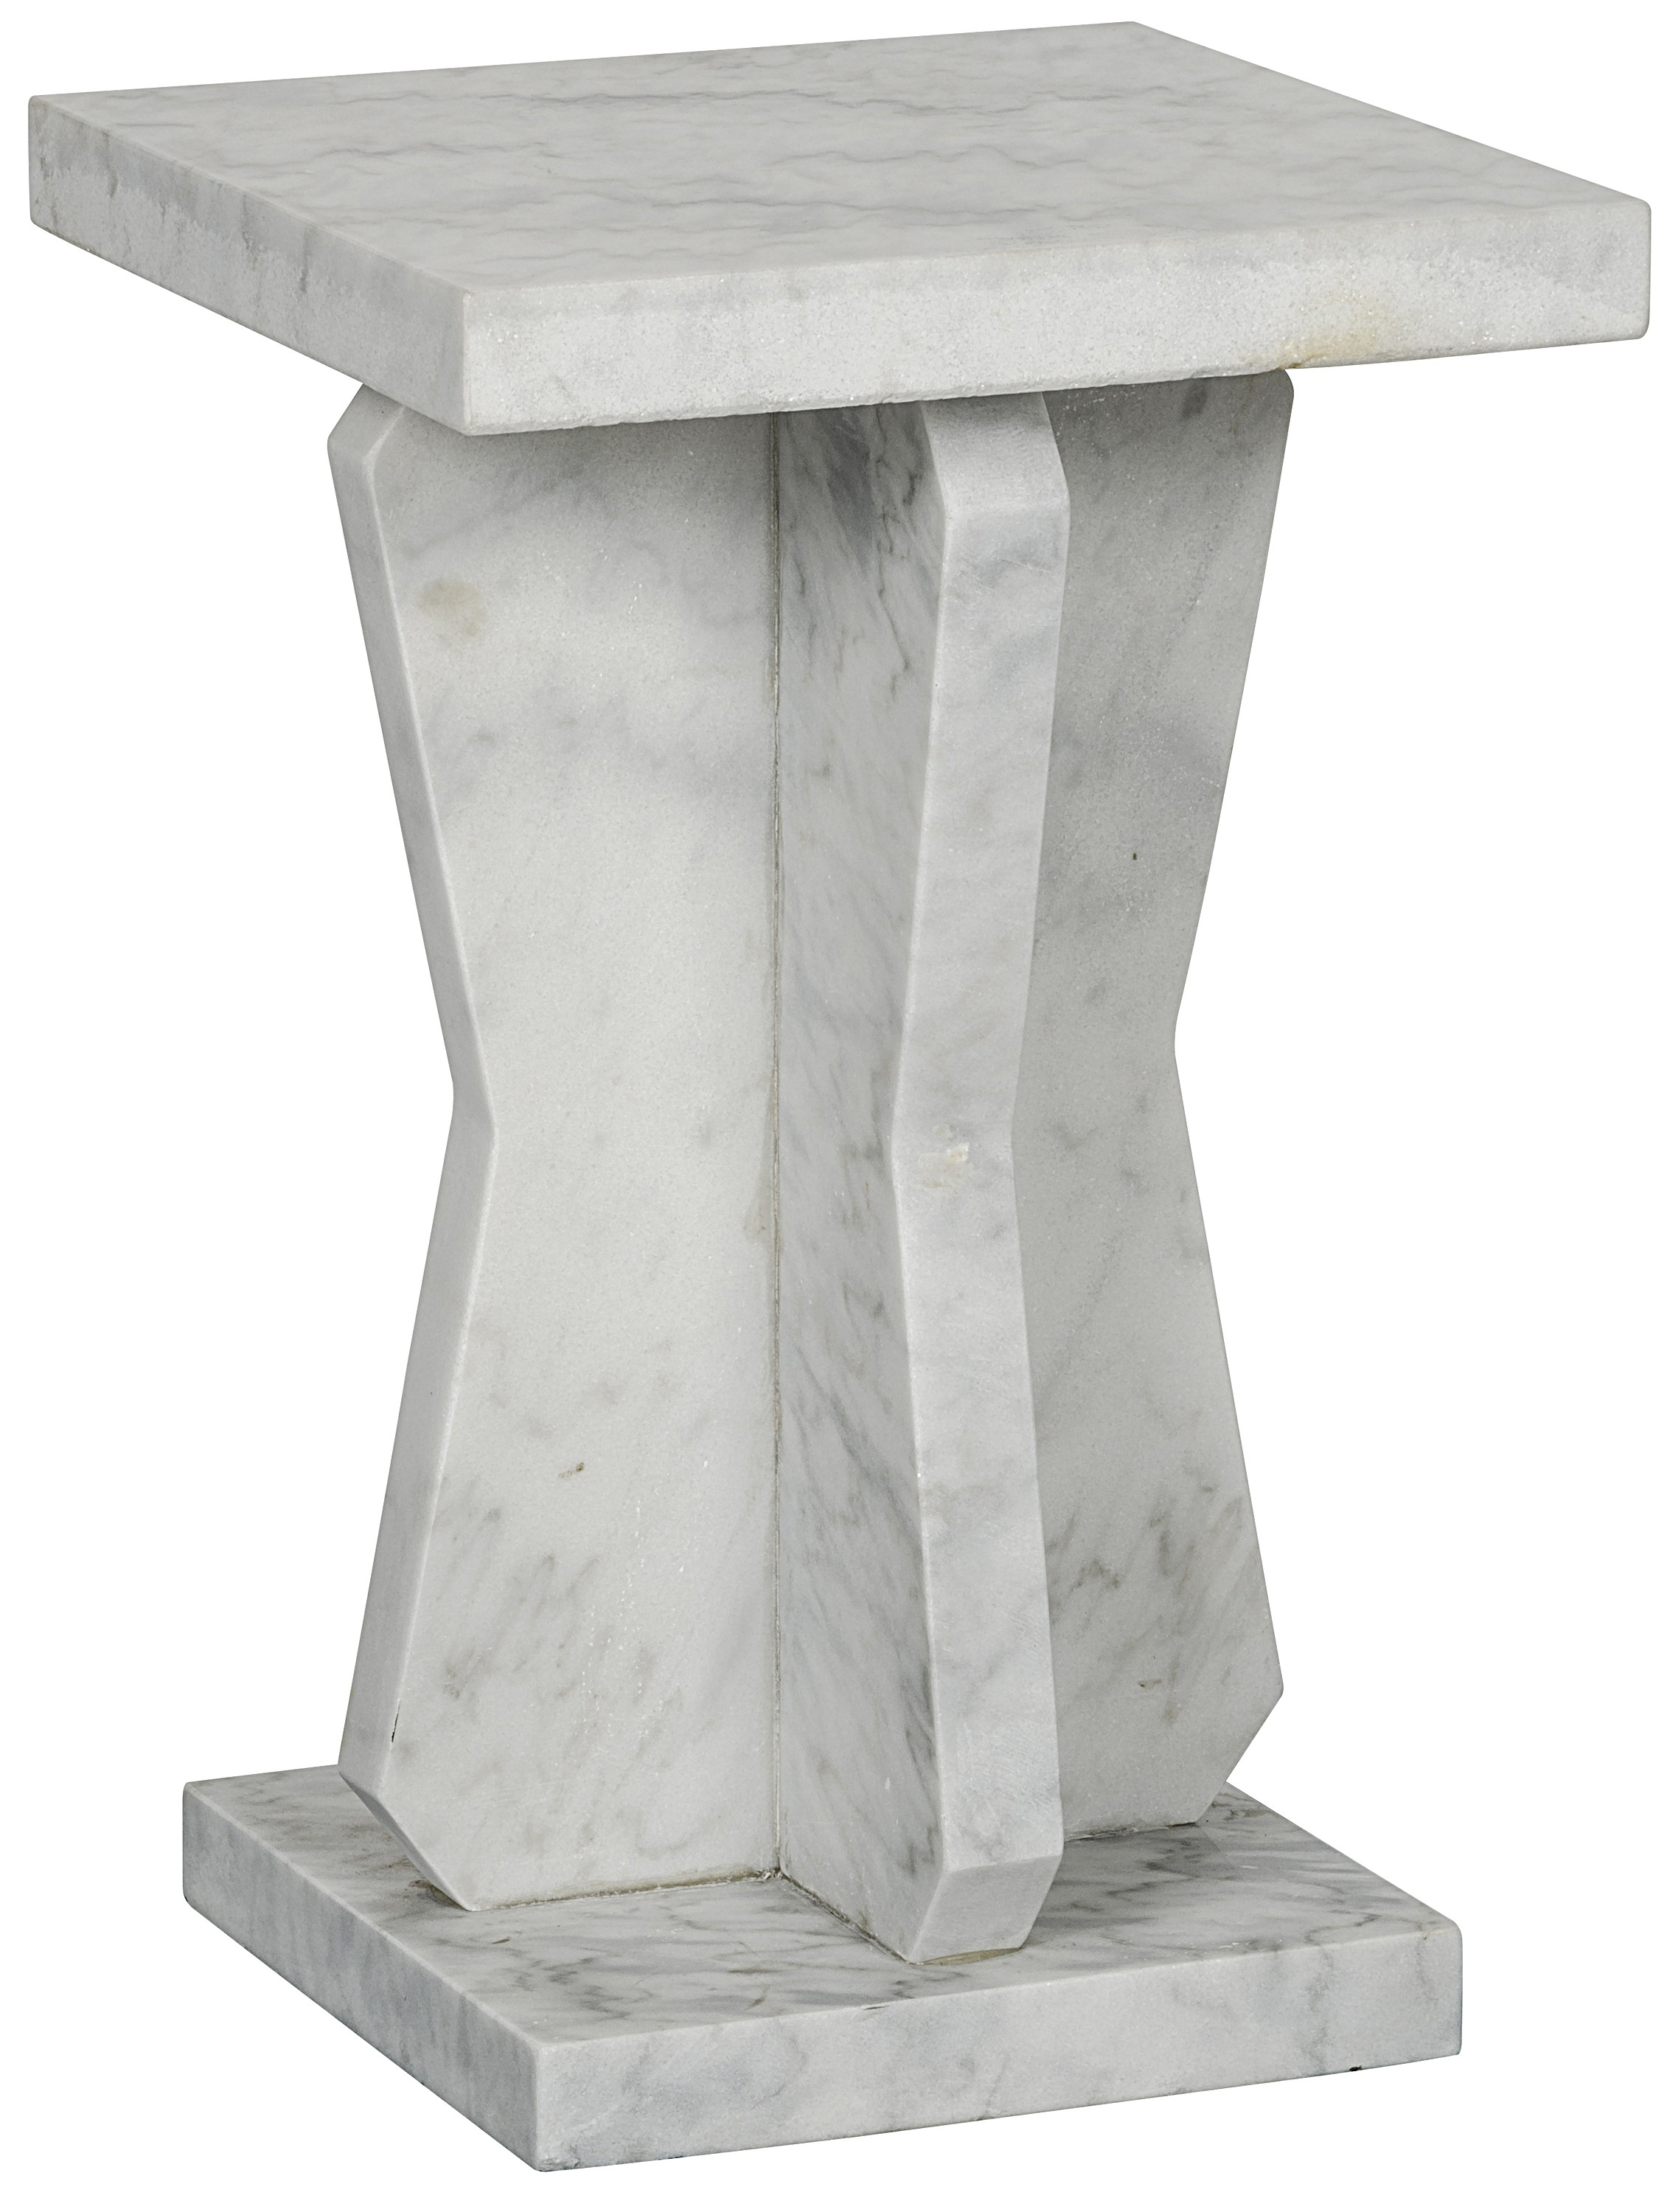 lexina accent table white marble inch console wood trestle dining round side cloth ethan allen room sets pulaski sofa top skinny foyer slimline bedside small mirrored desk silver